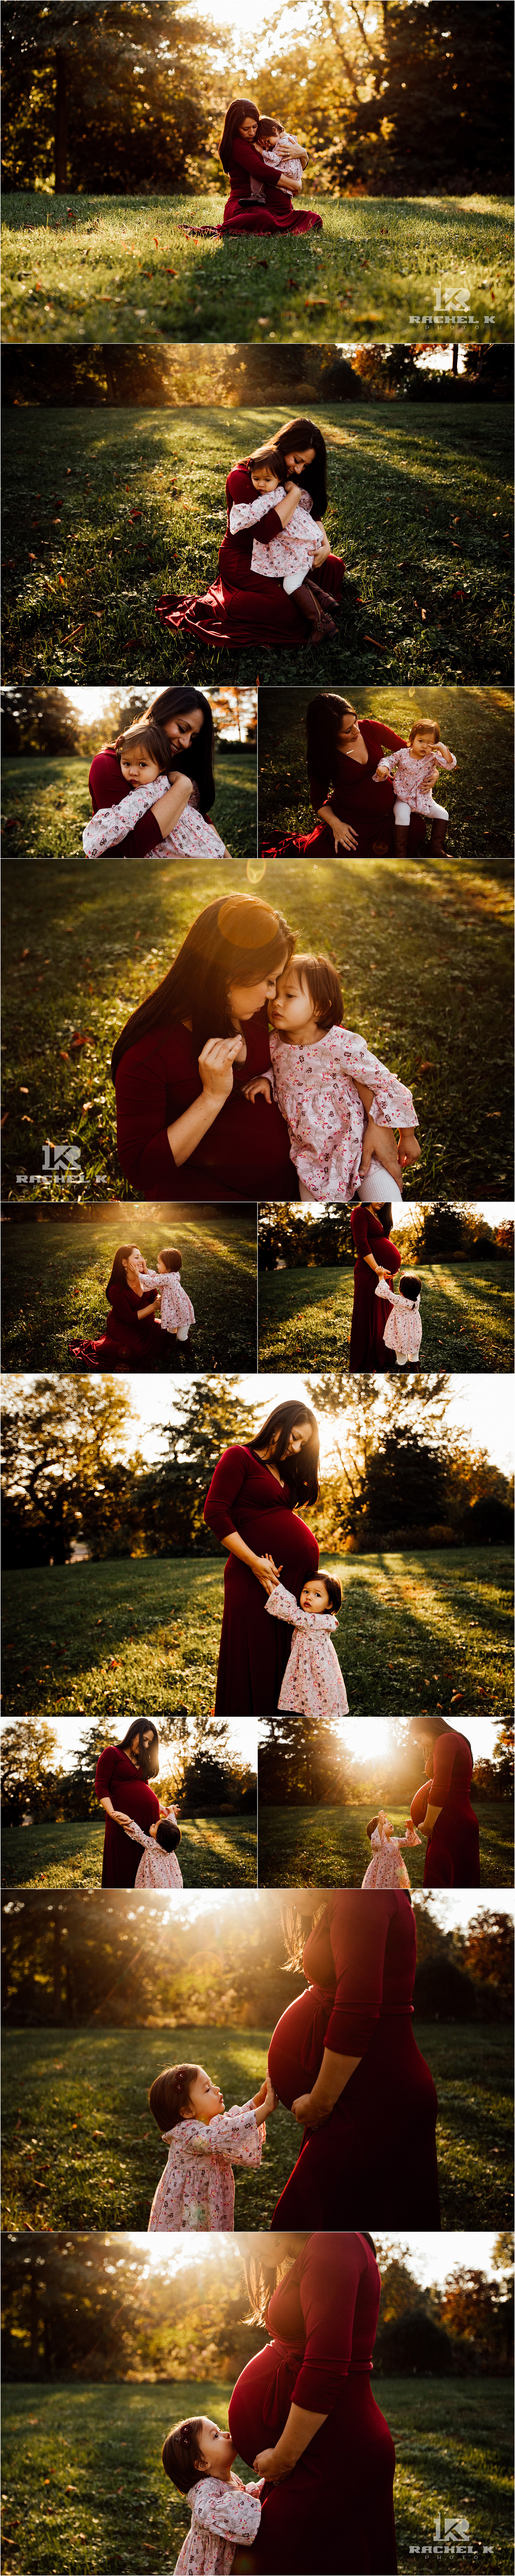 Centreville Virginia family session by Rachel K Photo